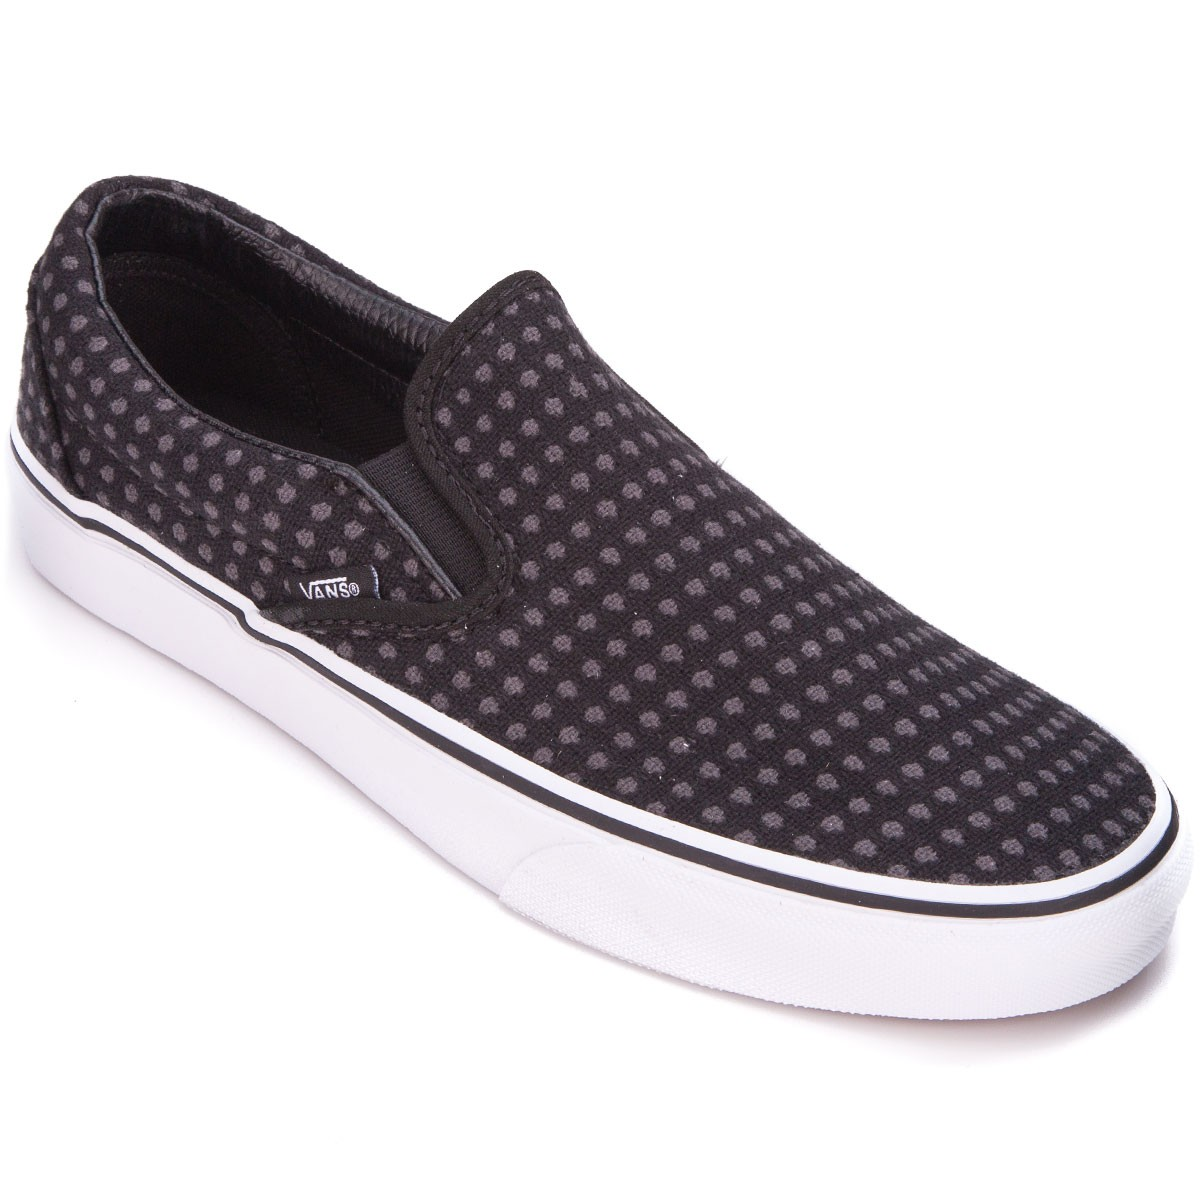 48f49b18c2 Vans Classic Slip-On Womens Shoes - Wool Dots Black White - 3.5